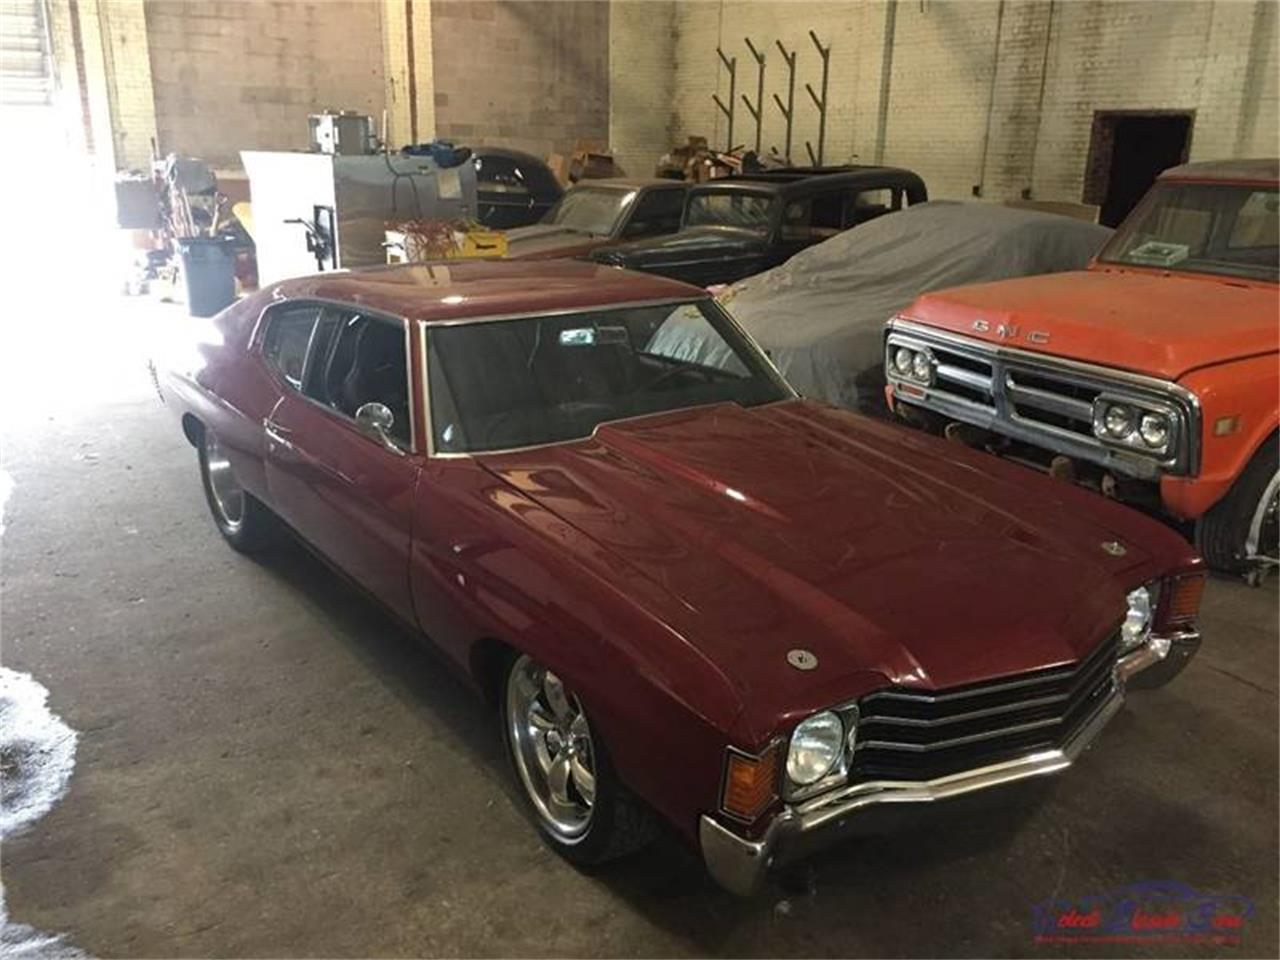 1972 Chevrolet Chevelle for sale in Hiram, GA – photo 44